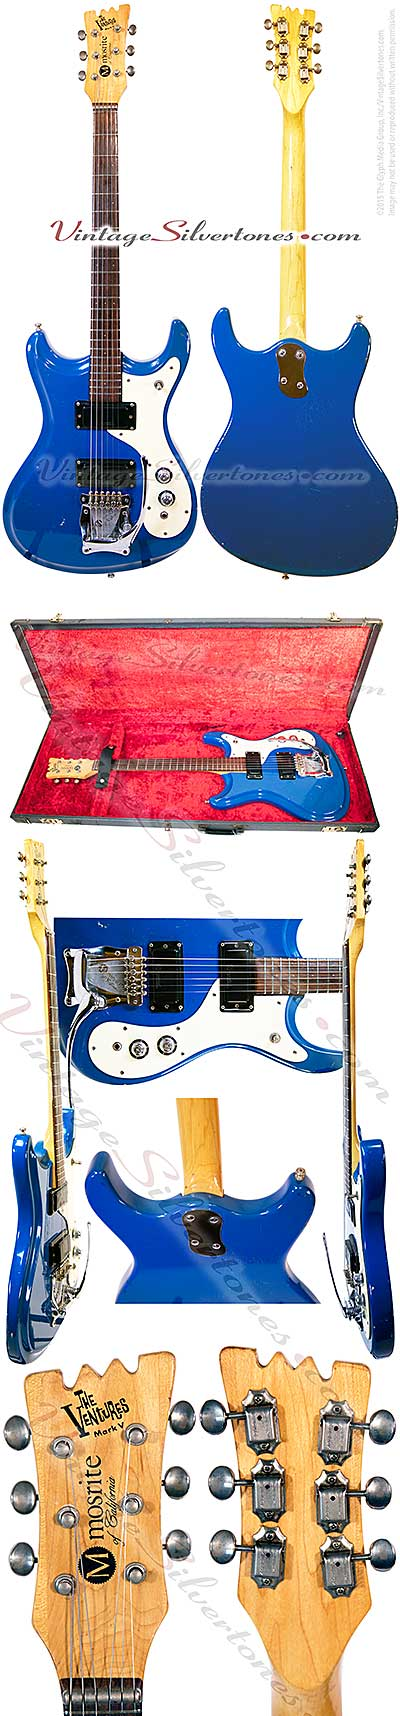 Mosrite Ventures Mark V, blue, 2pu, double cutaway, solid body, Mosrite tailpiece, 1966, California